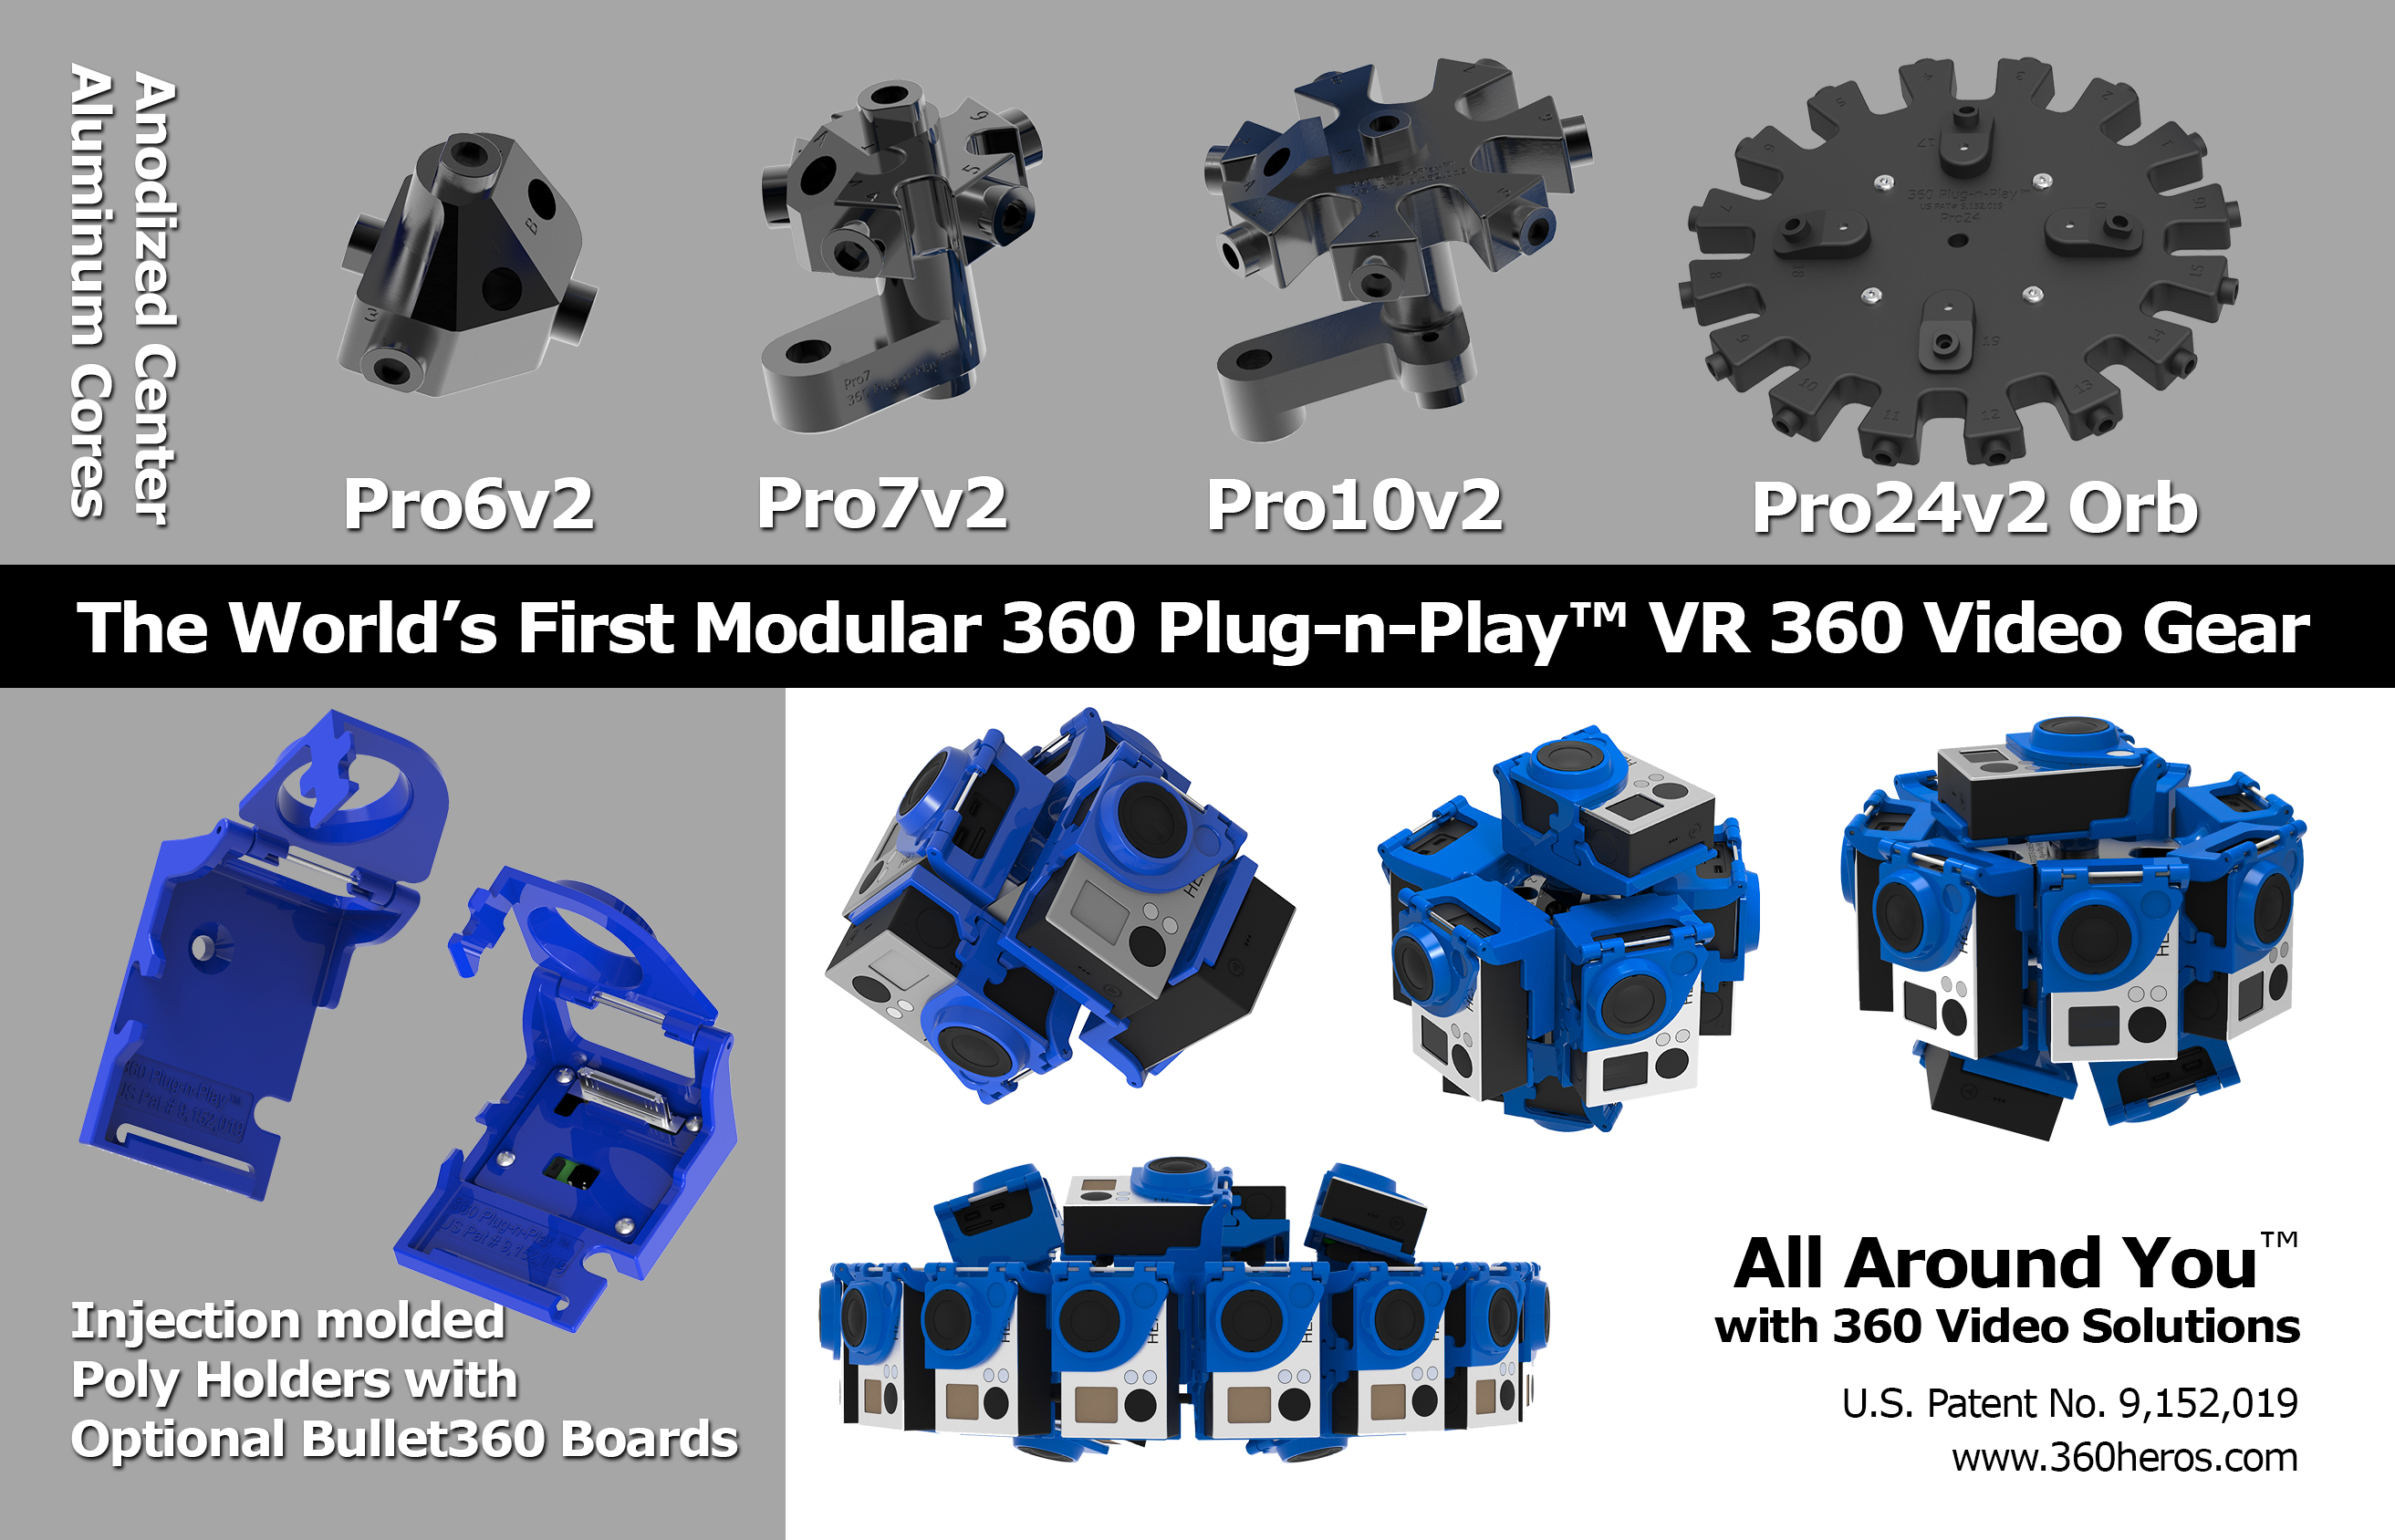 360Heros Launches New Modular VR 360 Video Solutions